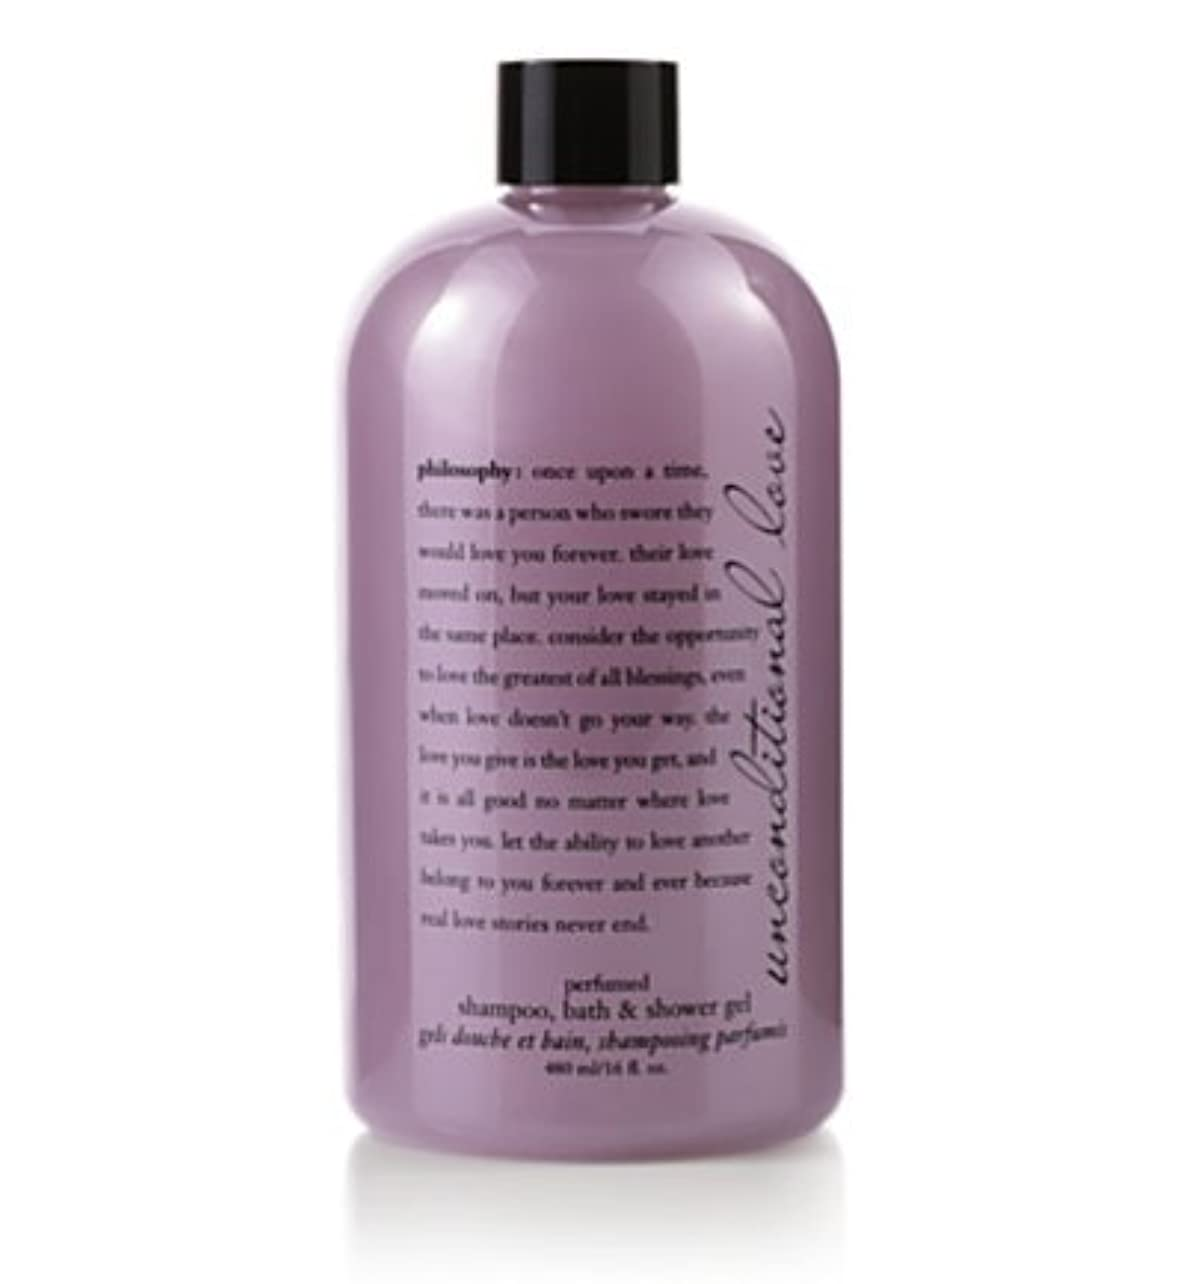 有名人反応する誠実unconditional love (アンコンディショナルラブ ) 16.0 oz (480ml) perfumed shampoo, bath & shower gel for Women